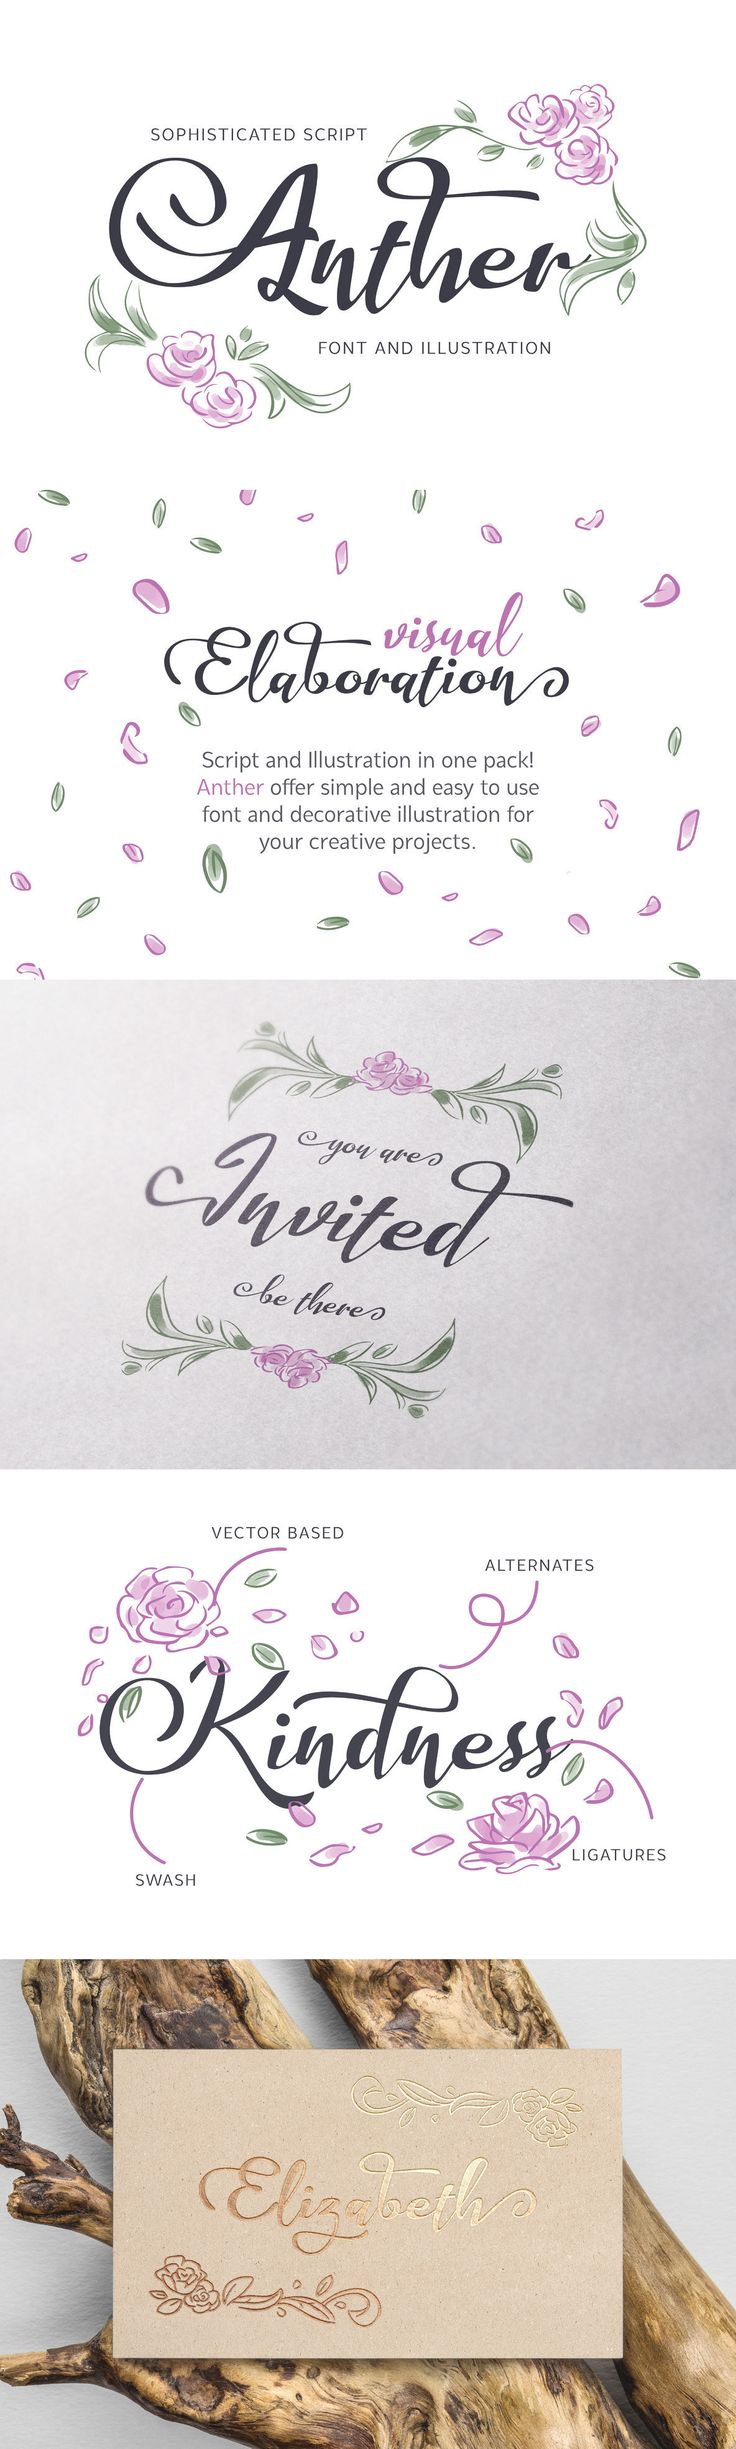 Anther - Script and Illustration in one pack! Anther offer simple and easy to use font and decorative illus...